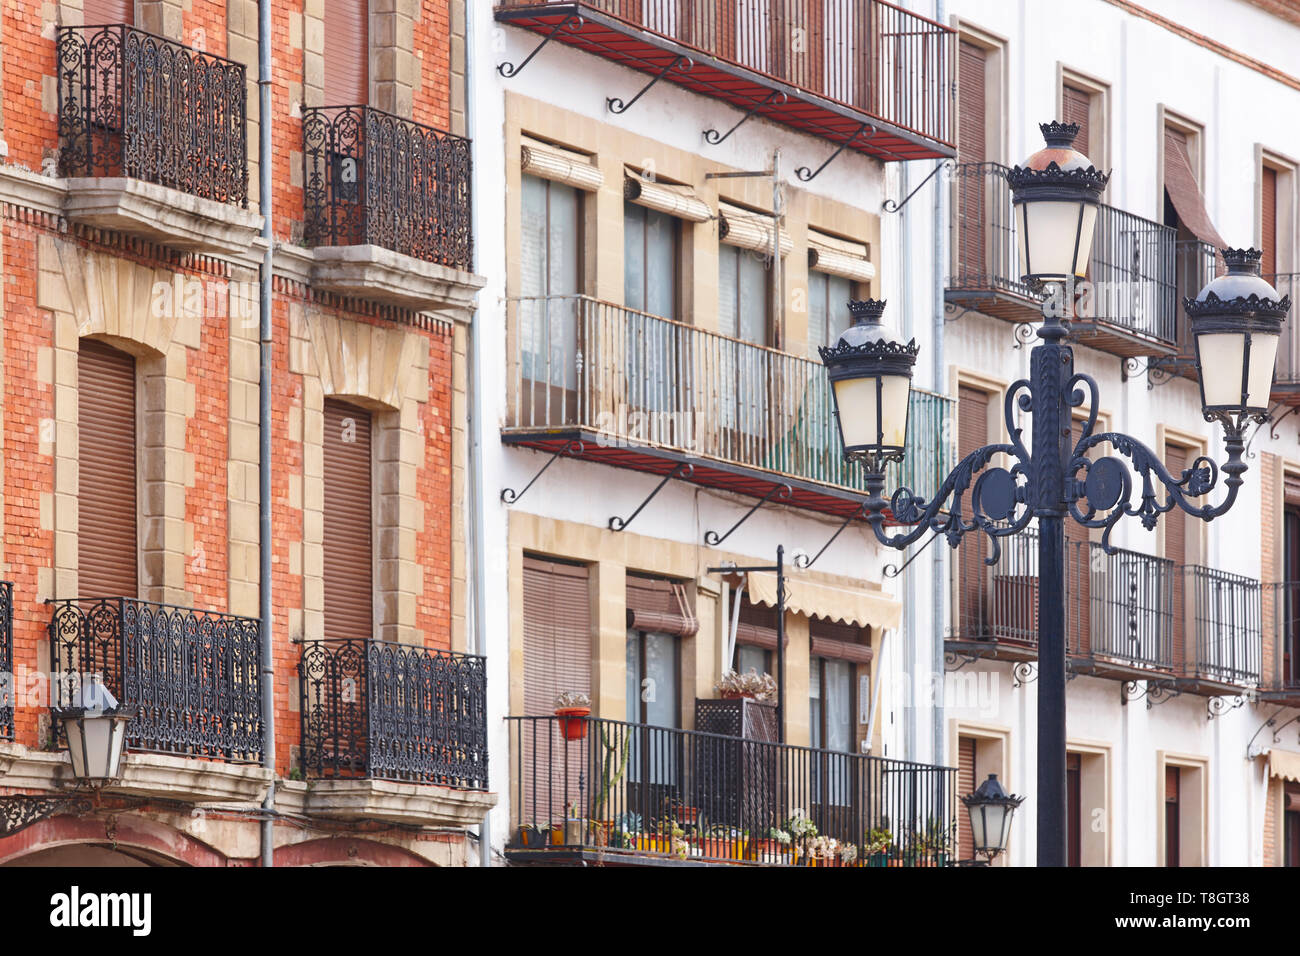 Traditional andalusian village facades and lamp in Baeza, Jaen. Spain - Stock Image